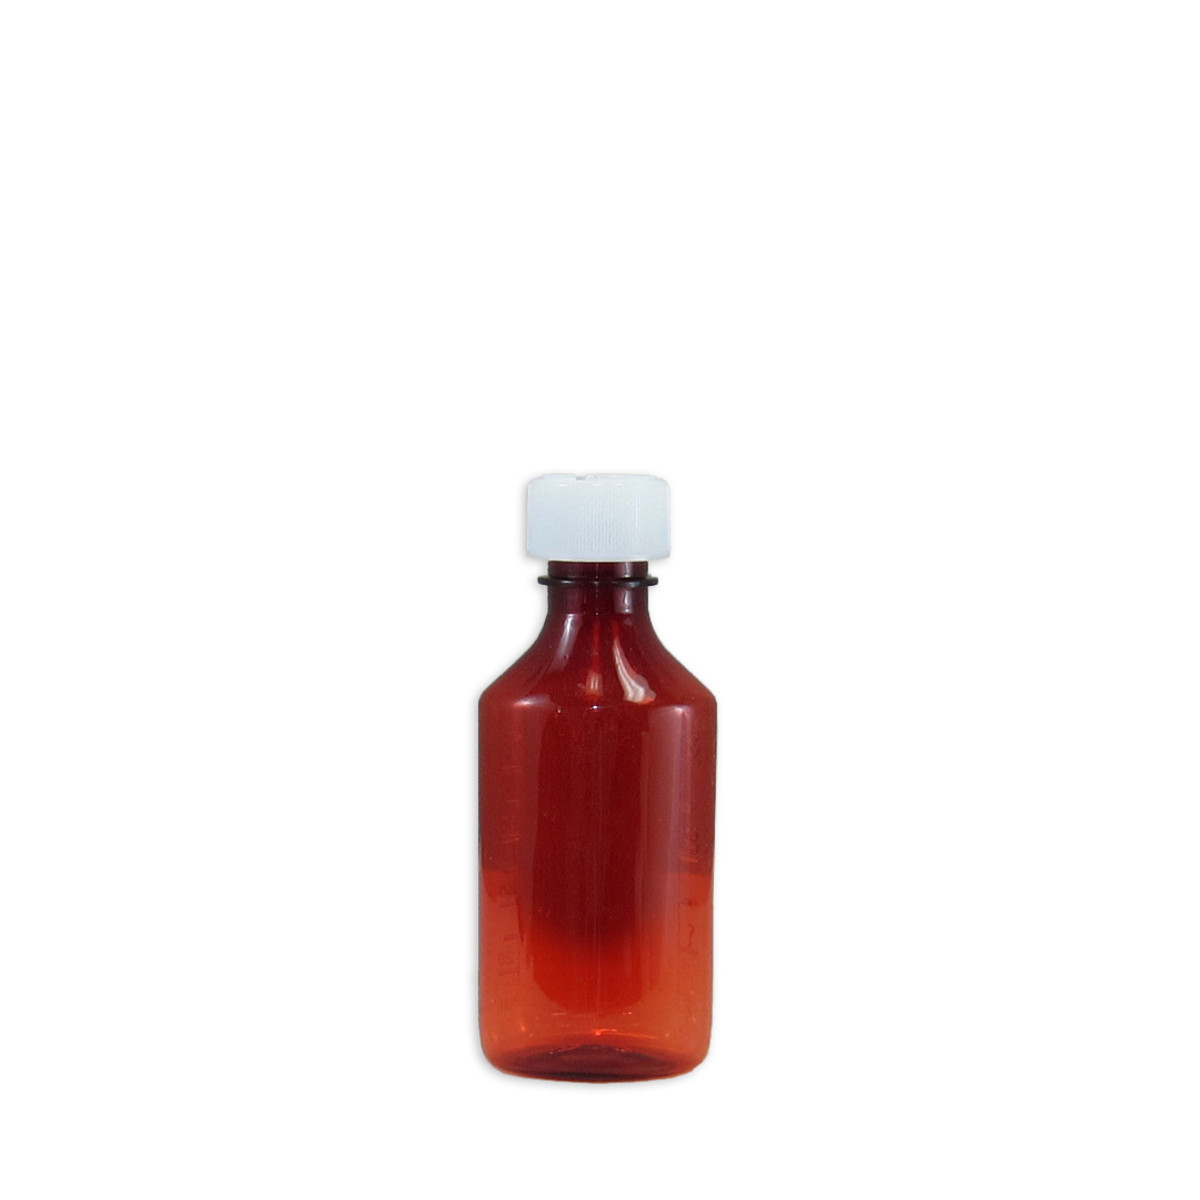 bff650522952 Amber Oval Pharmacy Bottle, Child Resistant Cap, 4oz, case/200